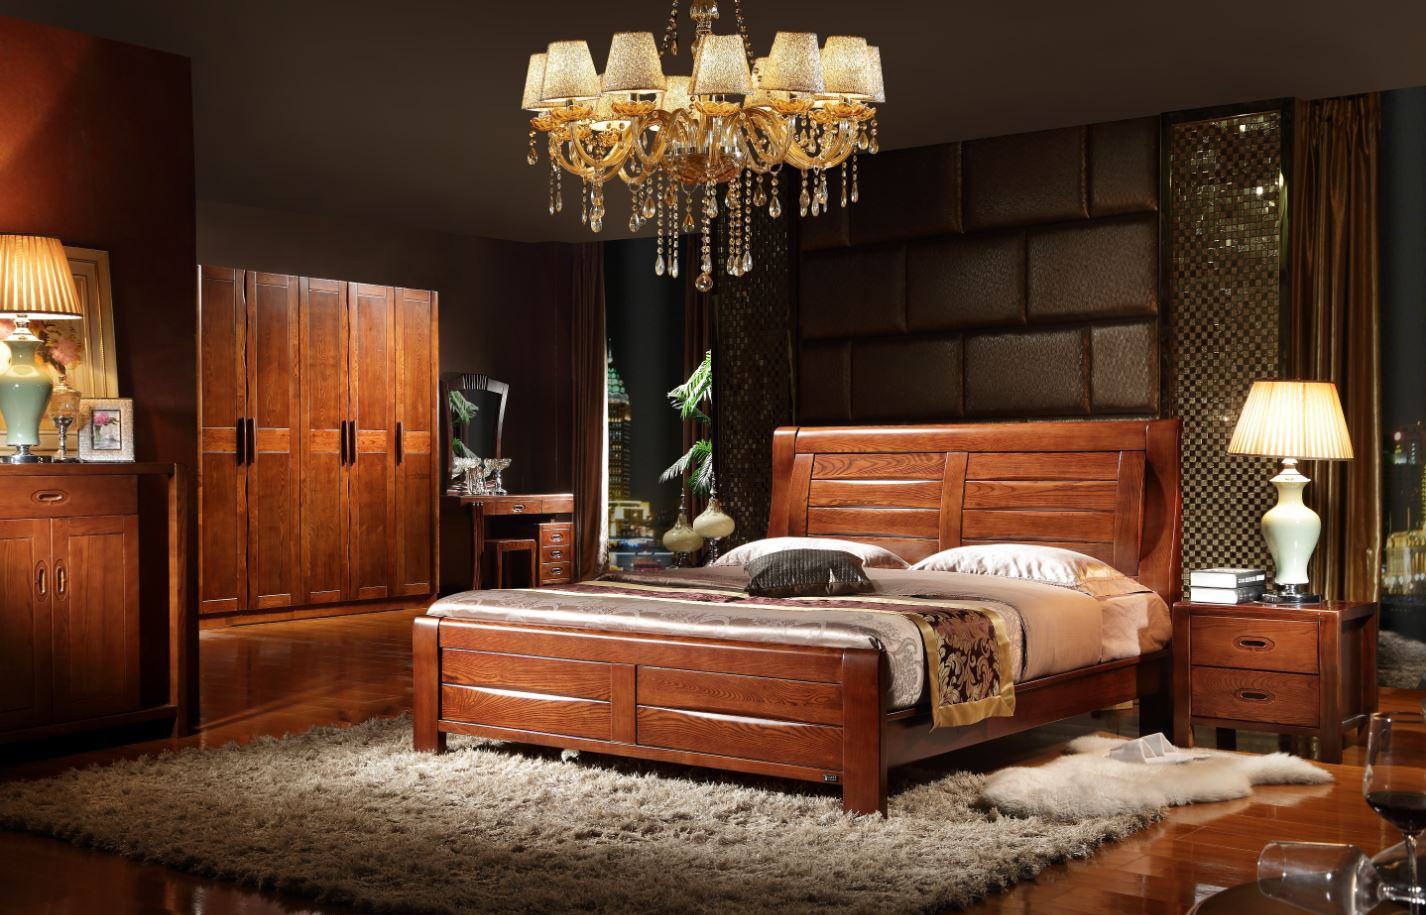 Chinese Decorations For Bedroom Chinese Bedroom Furniture Bedroom Ideas